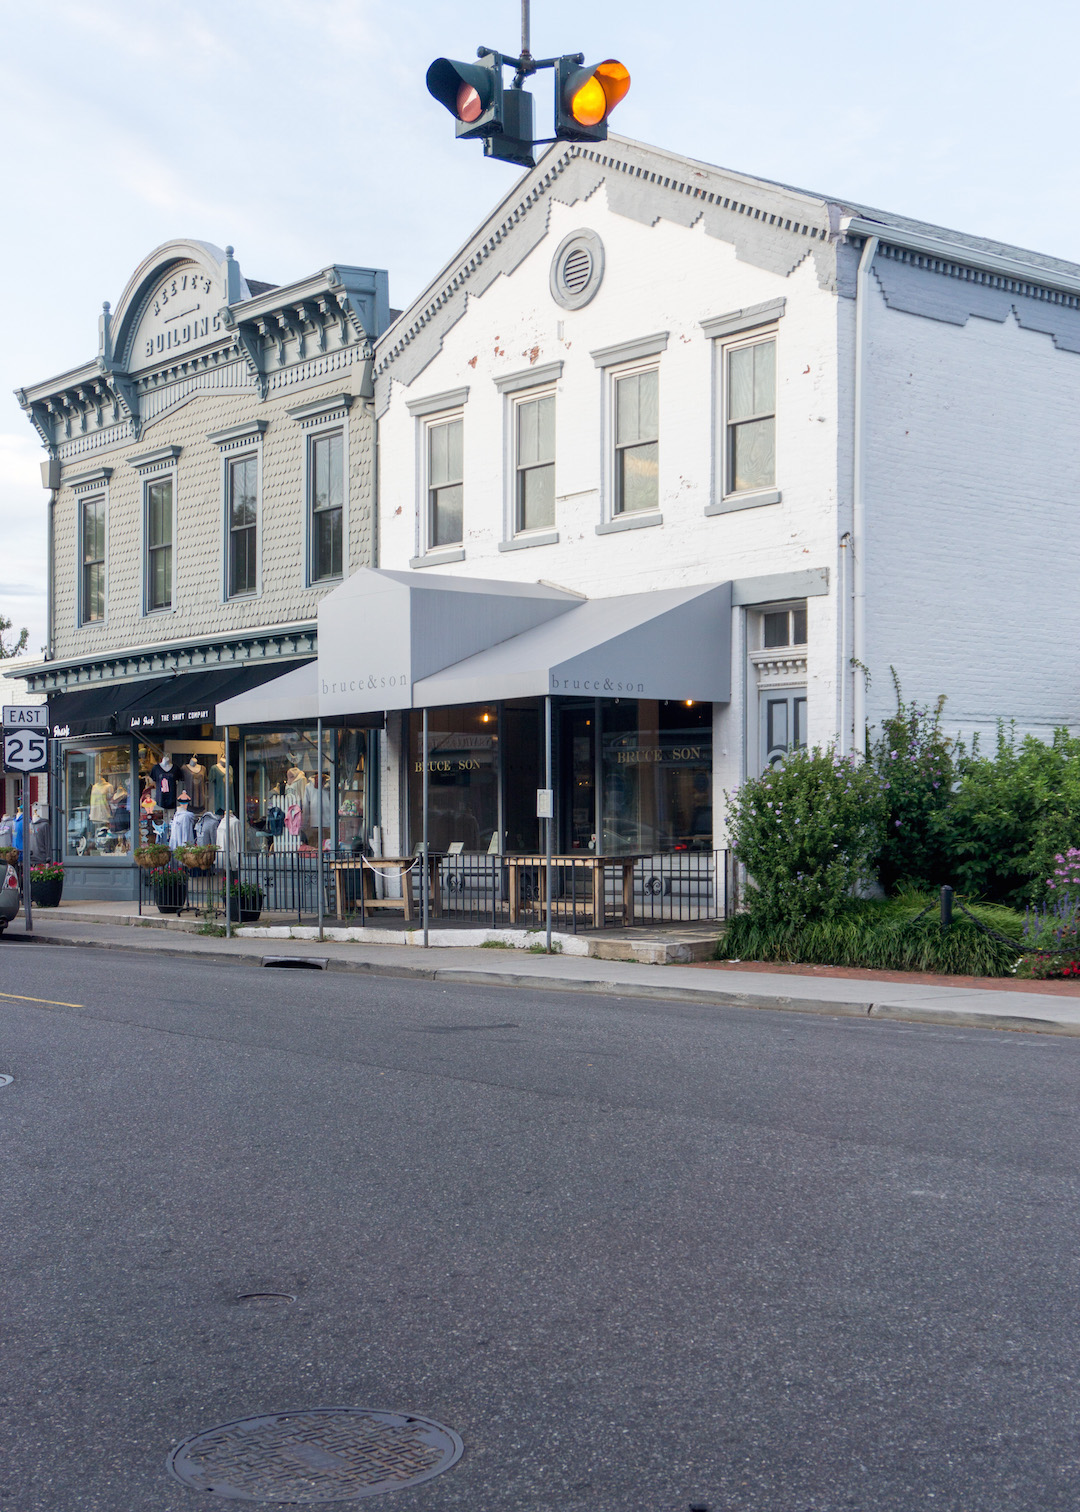 Street of Greenport - Bruce and Son Restaurant